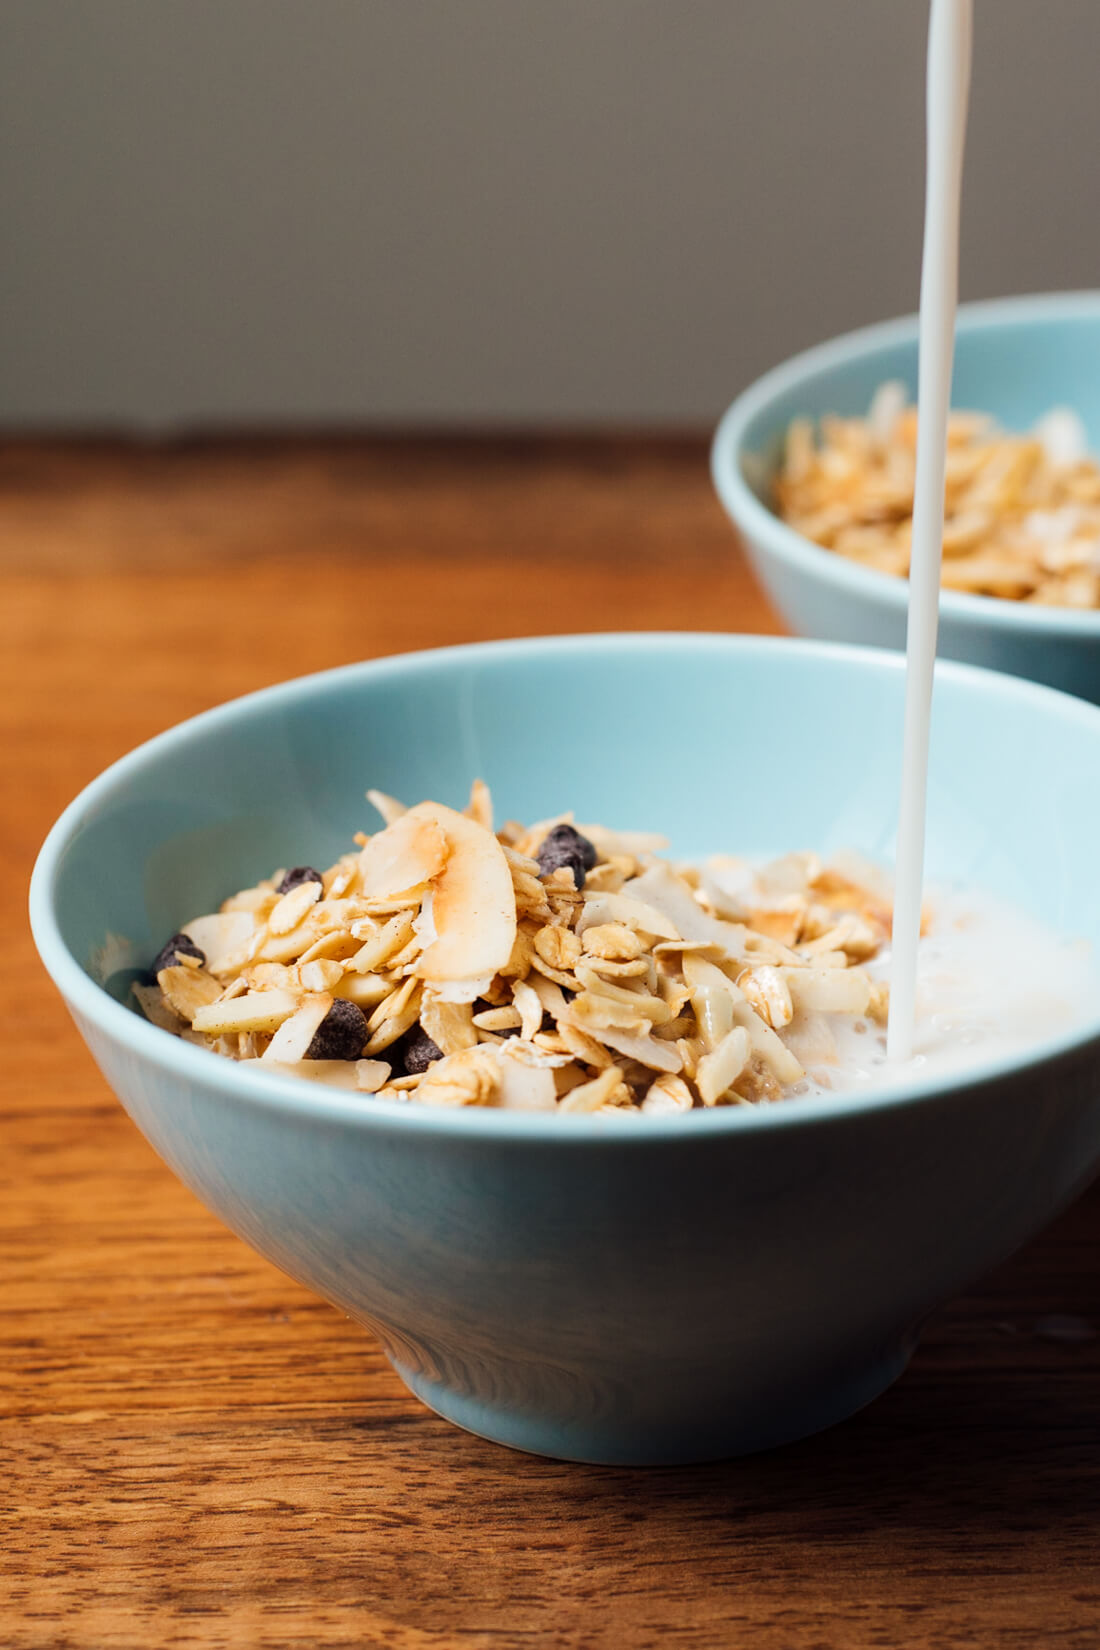 Toasted muesli with almonds, coconut and chocolate